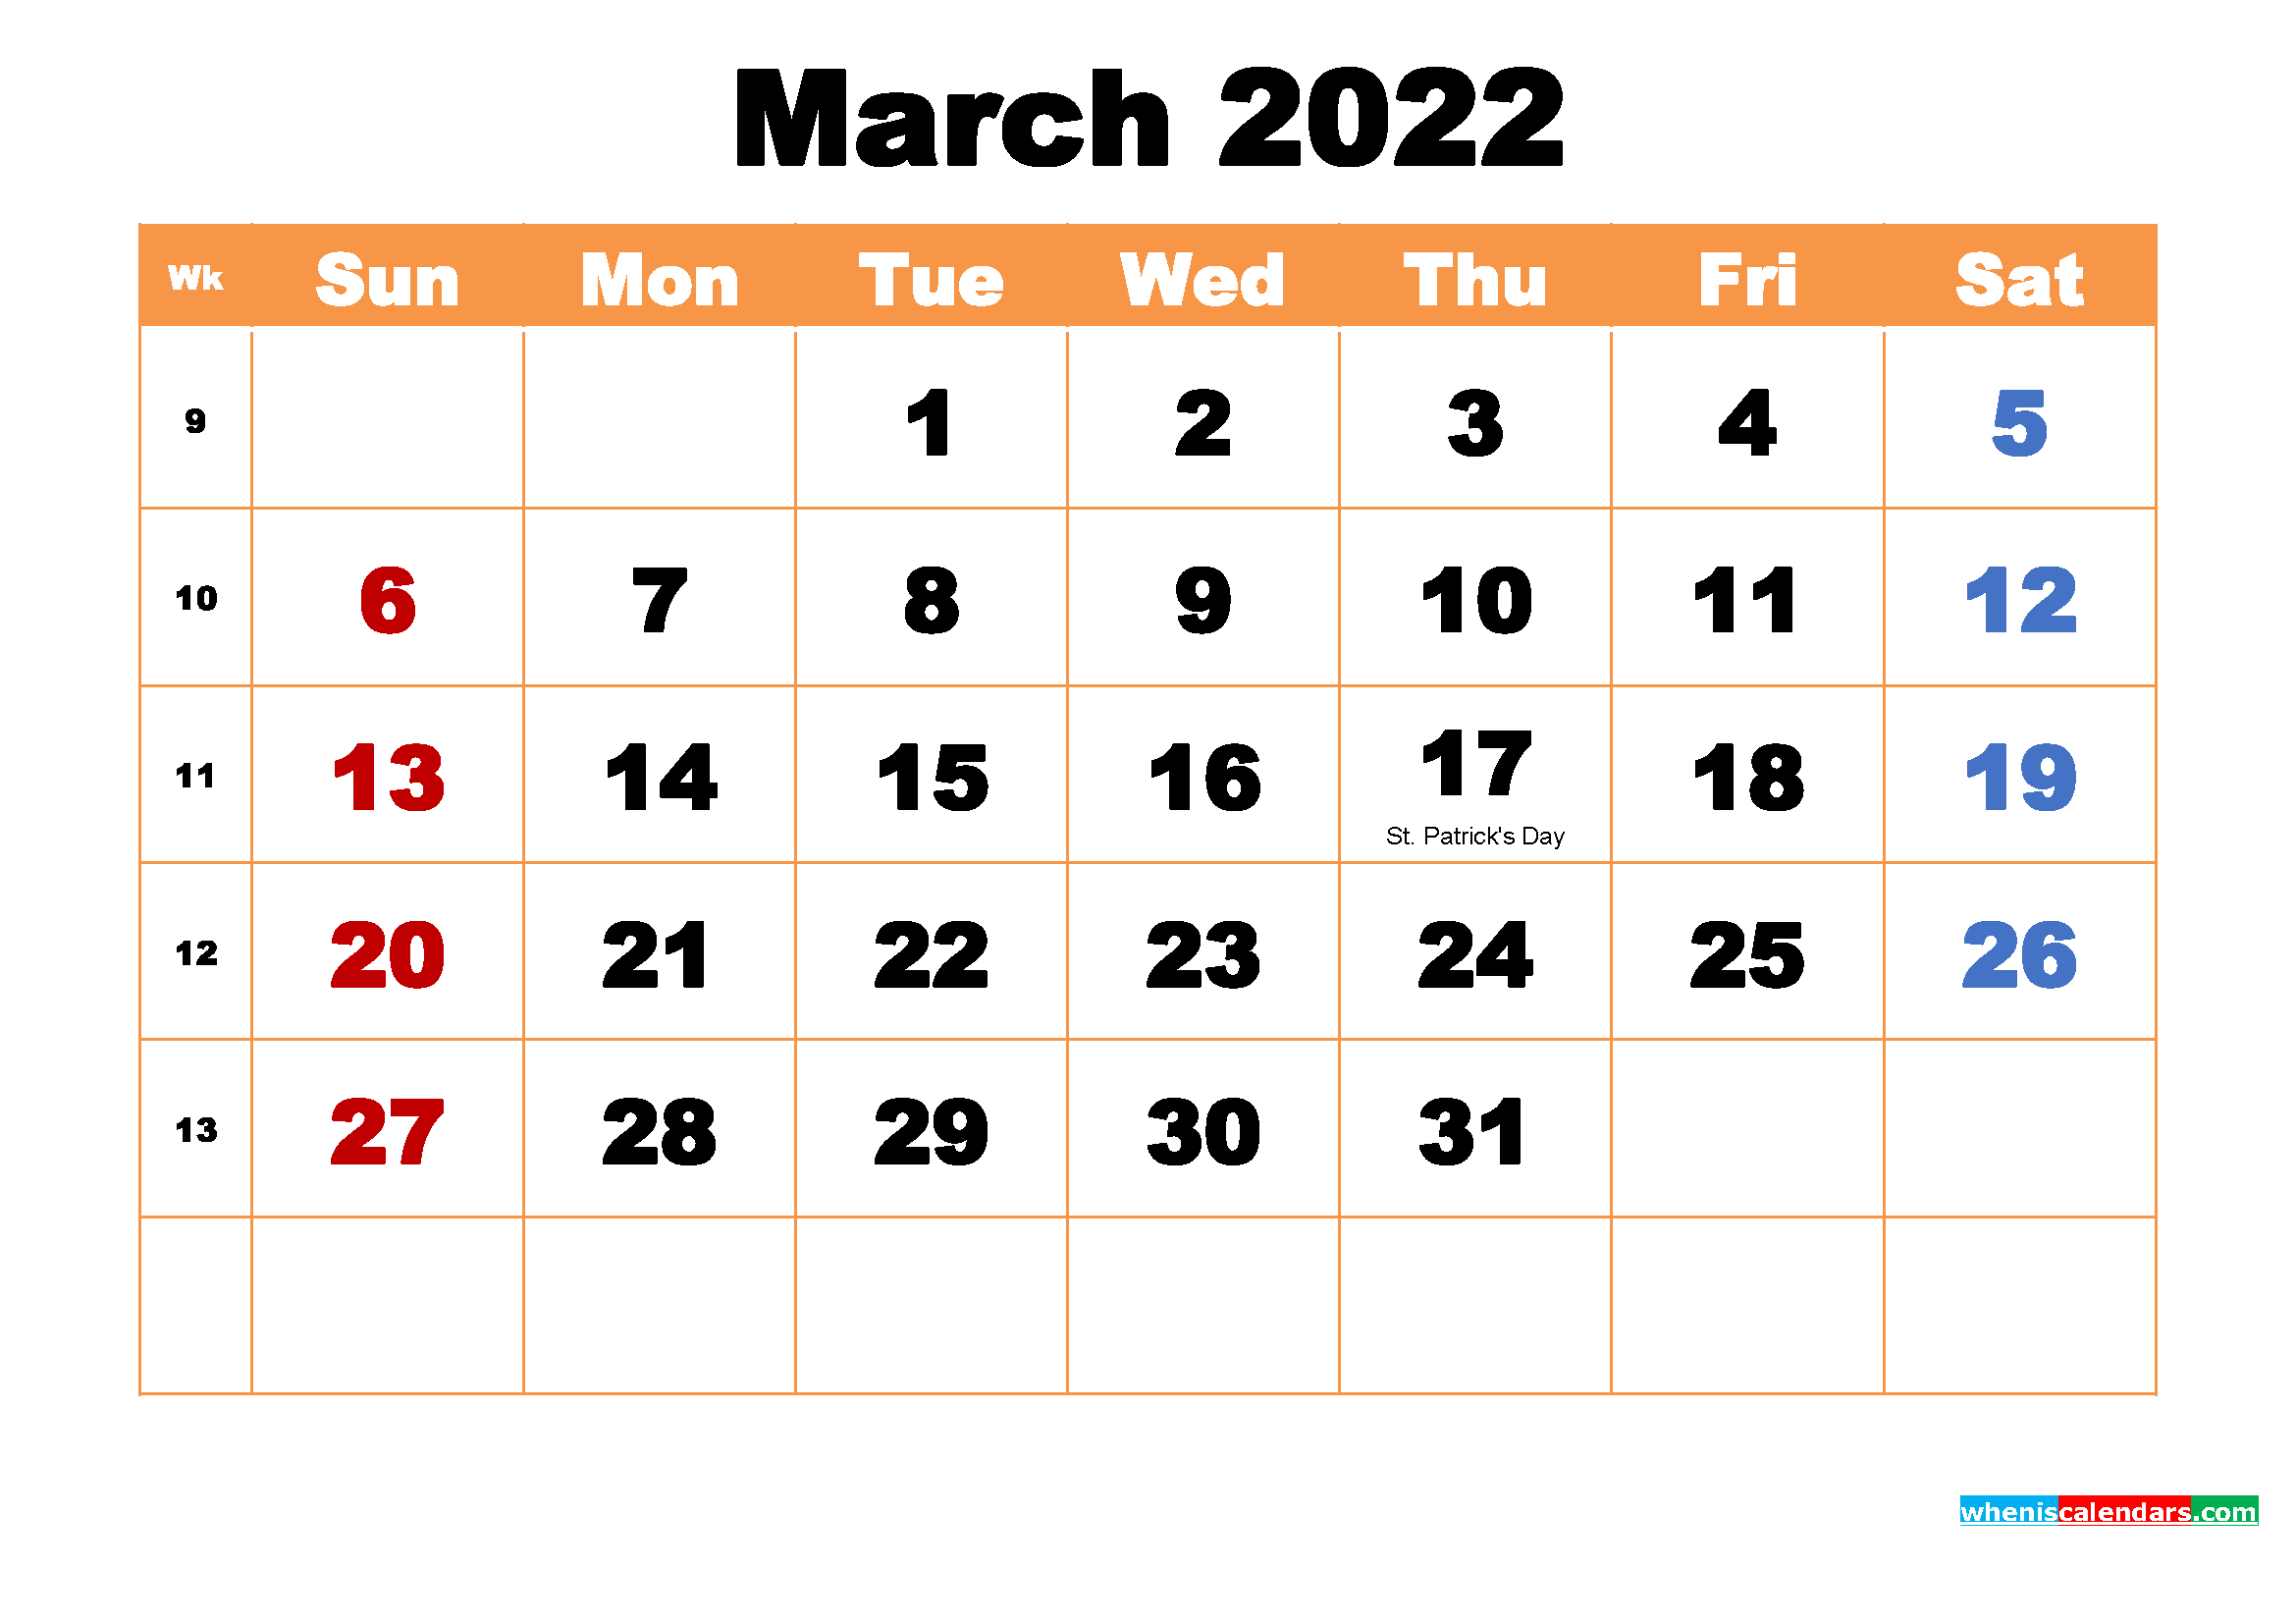 March 2022 Printable Monthly Calendar with Holidays